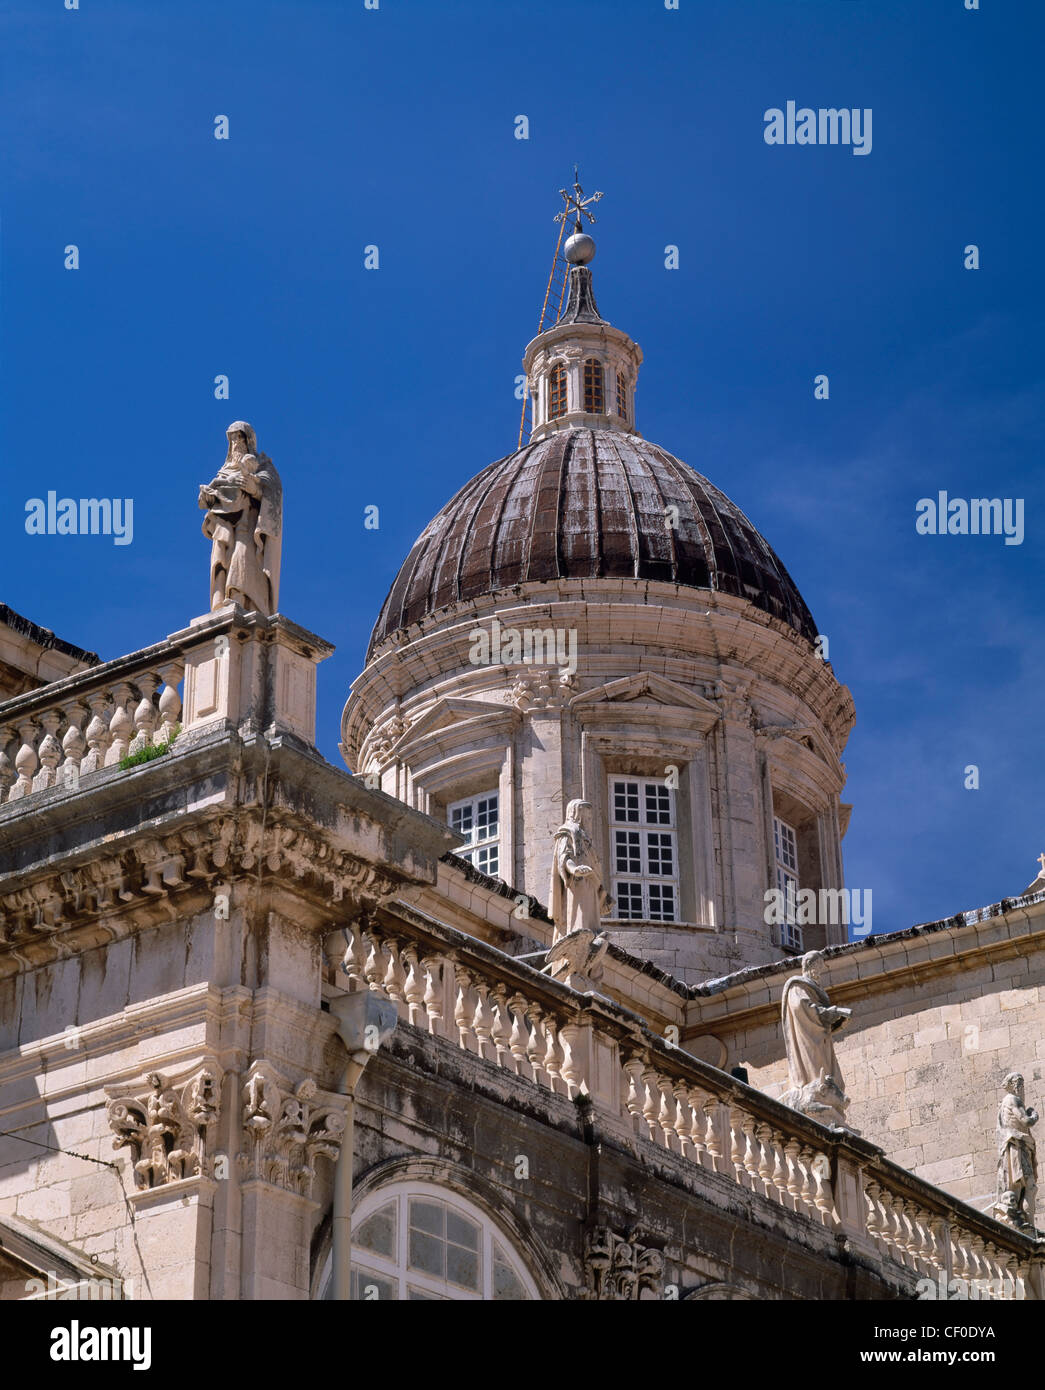 The Cathedral of the Assumption of the Virgin, Dubrovnik, Dalmatia, Croatia. A UNESCO Cultural World Heritage Site. - Stock Image